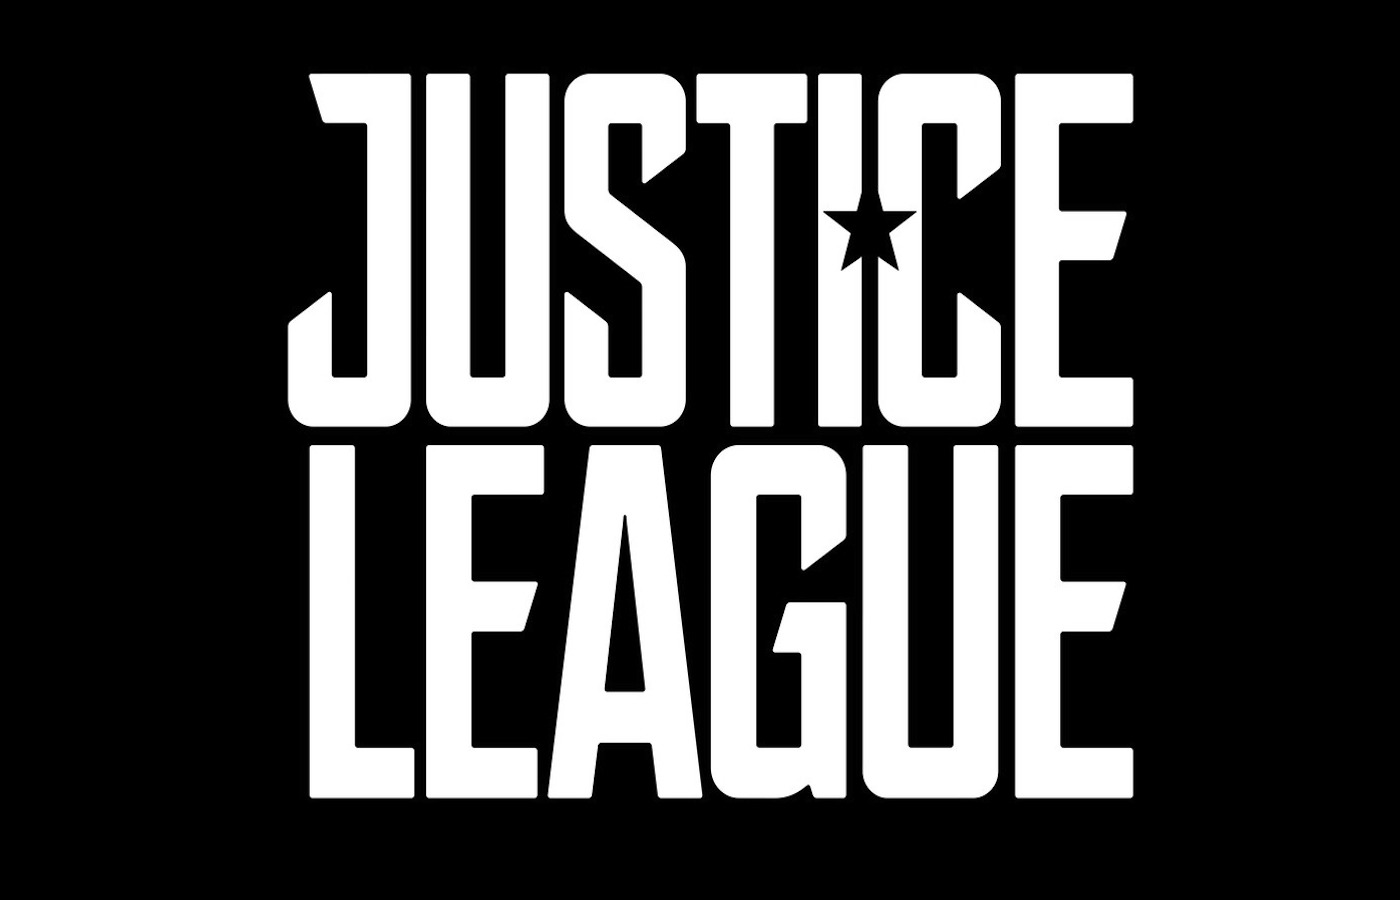 justice-league-logo-black.jpg